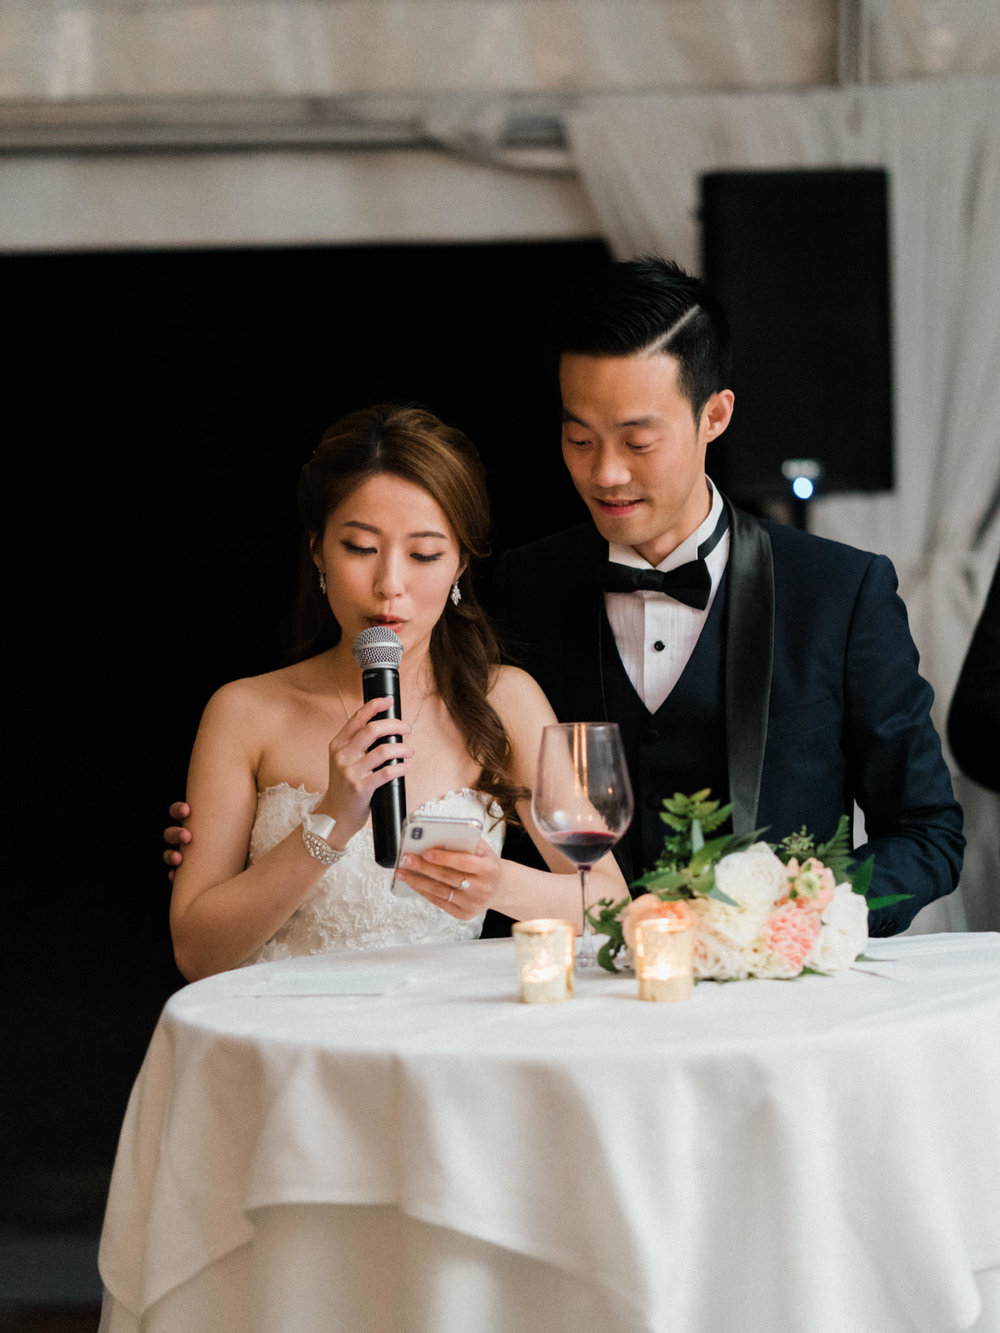 Wedding Reception at Hart House Vancouver